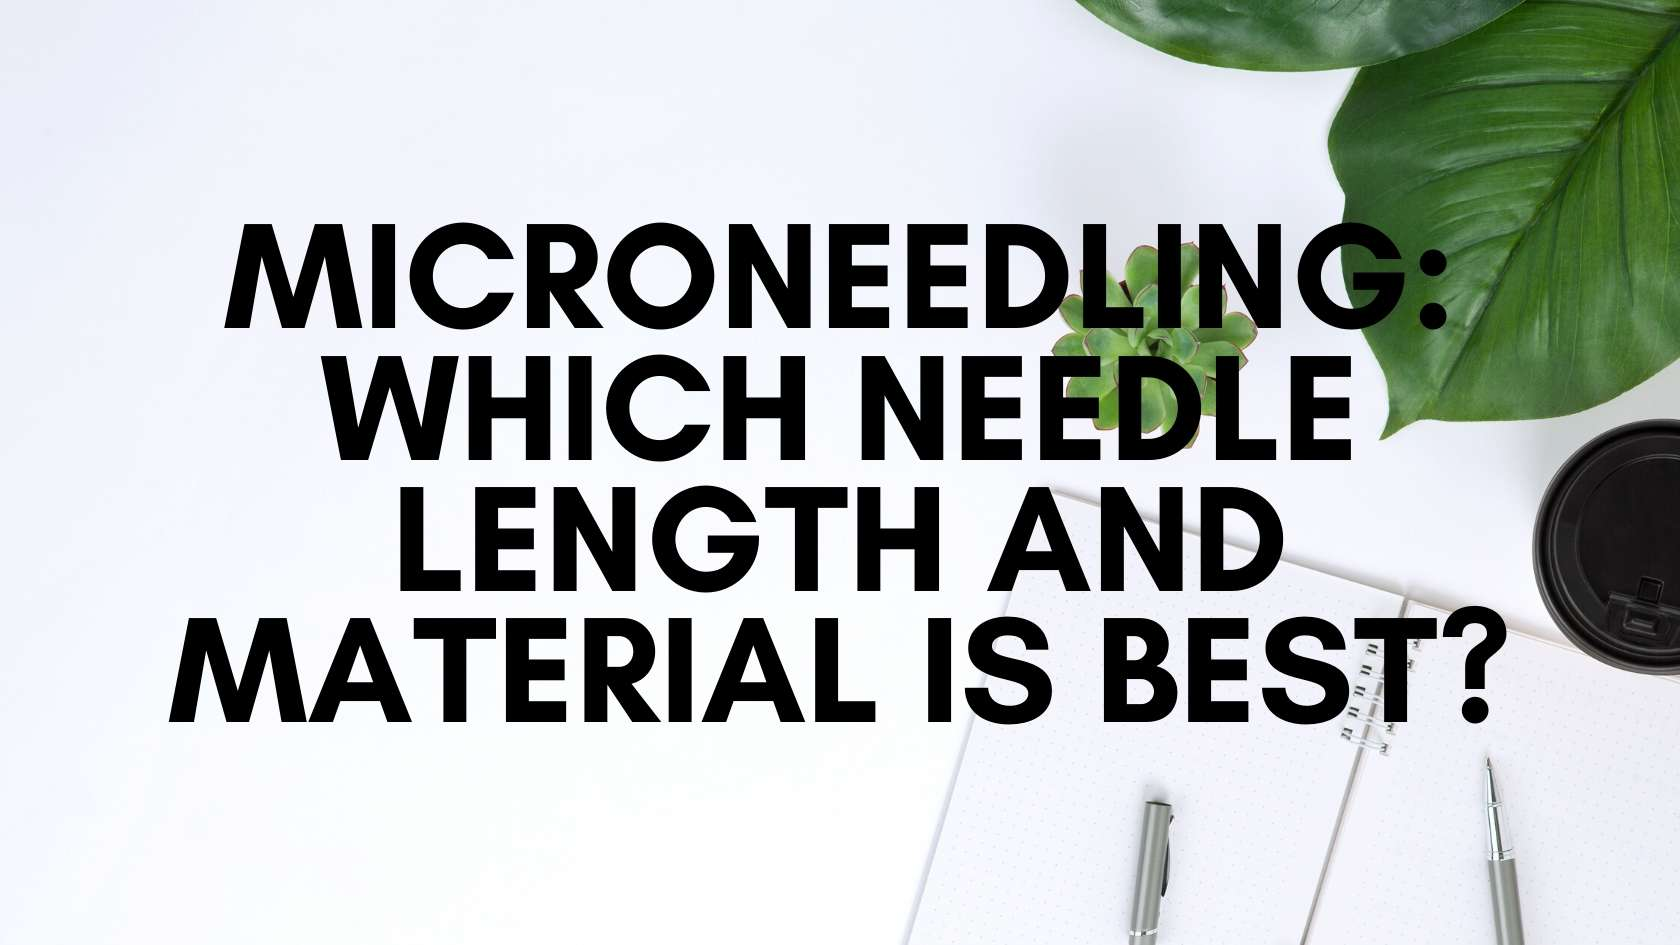 Microneedling: Which Needle Length and Material Is Best?